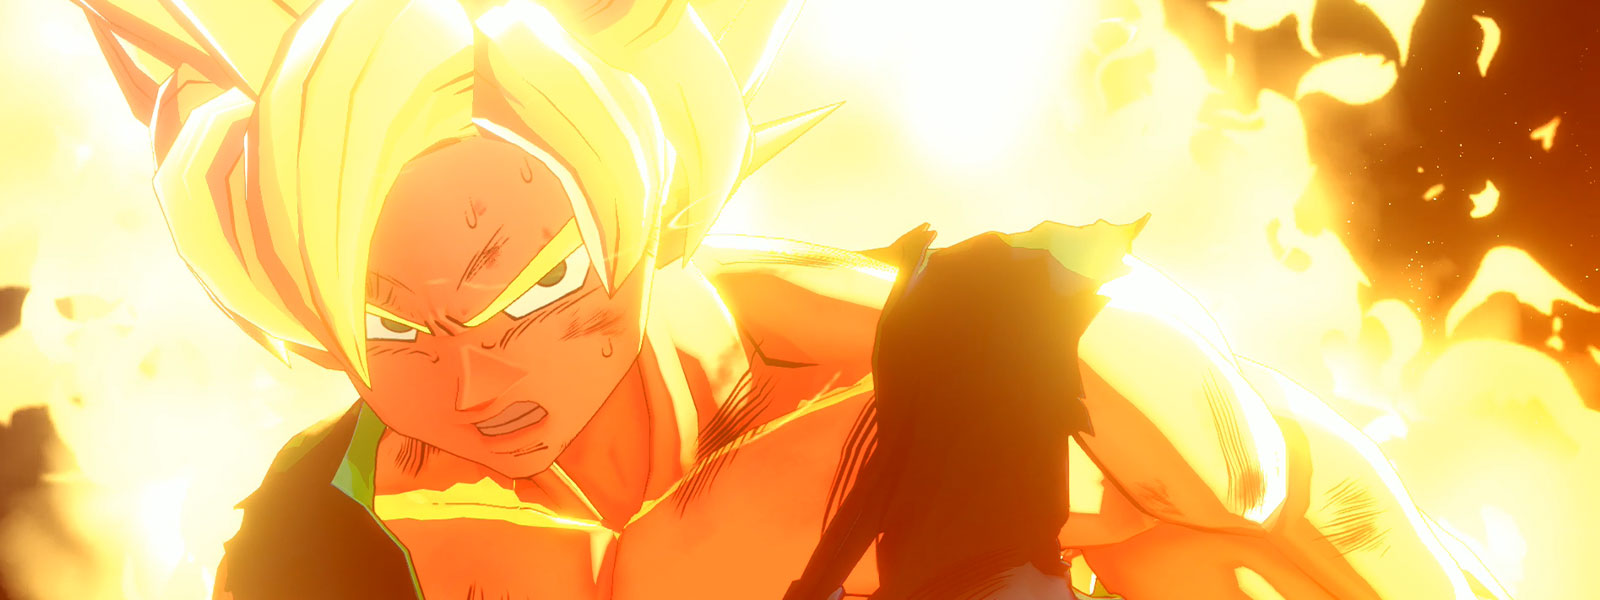 An exhausted Saiyan Goku is surrounded by flames